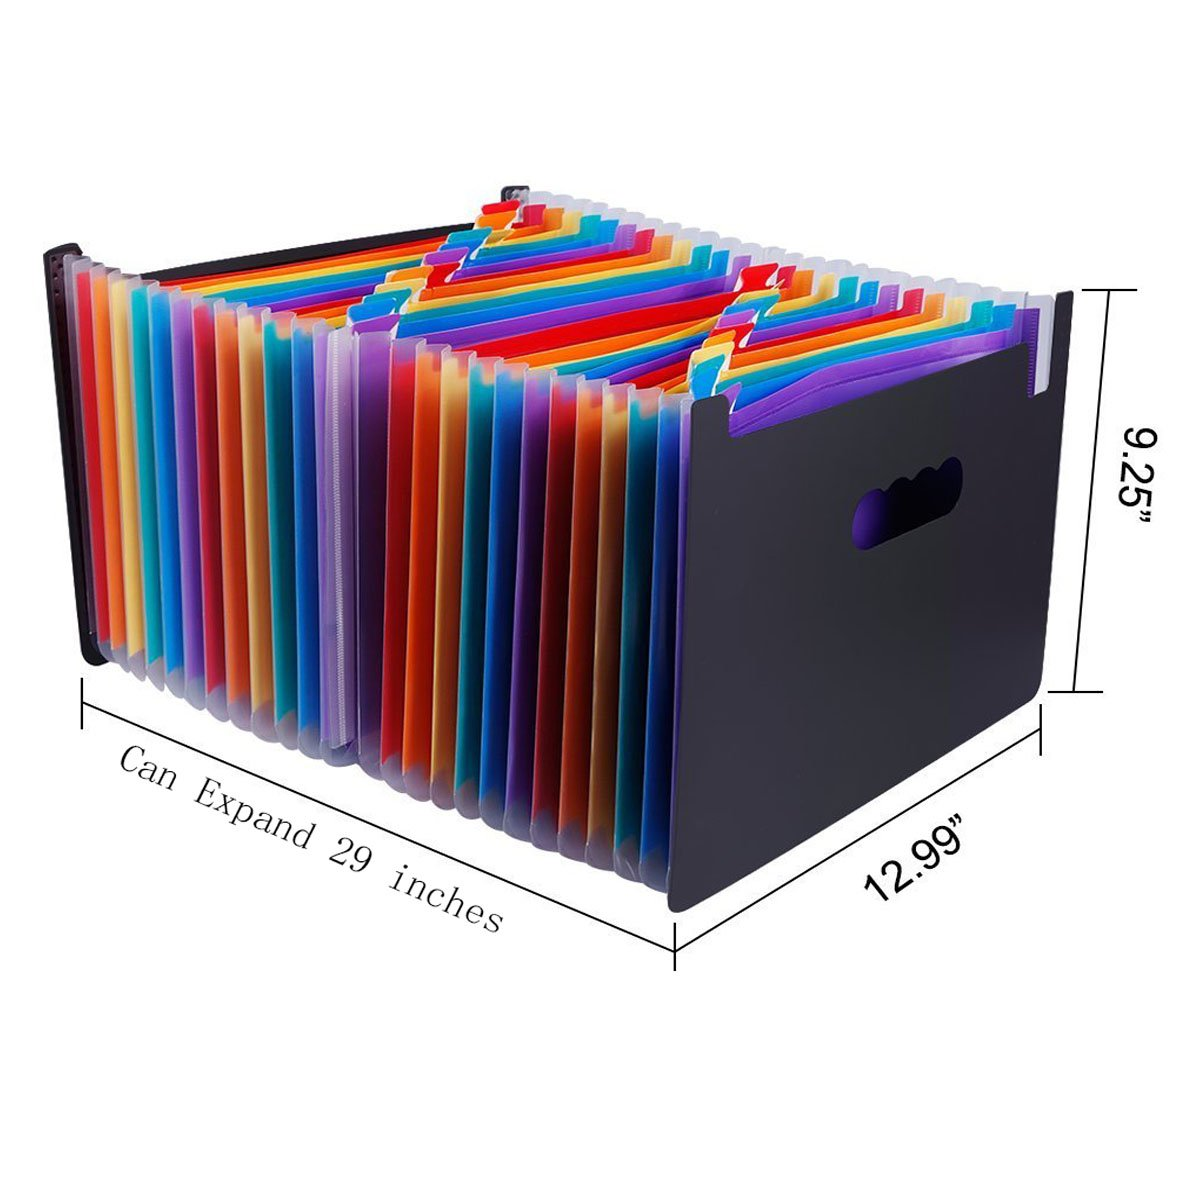 24 Pocket Expanding File Organizer Multicolor Expandable Accordion Style Filing Folder 24 Pocket, Multi by Egros Home /& Office